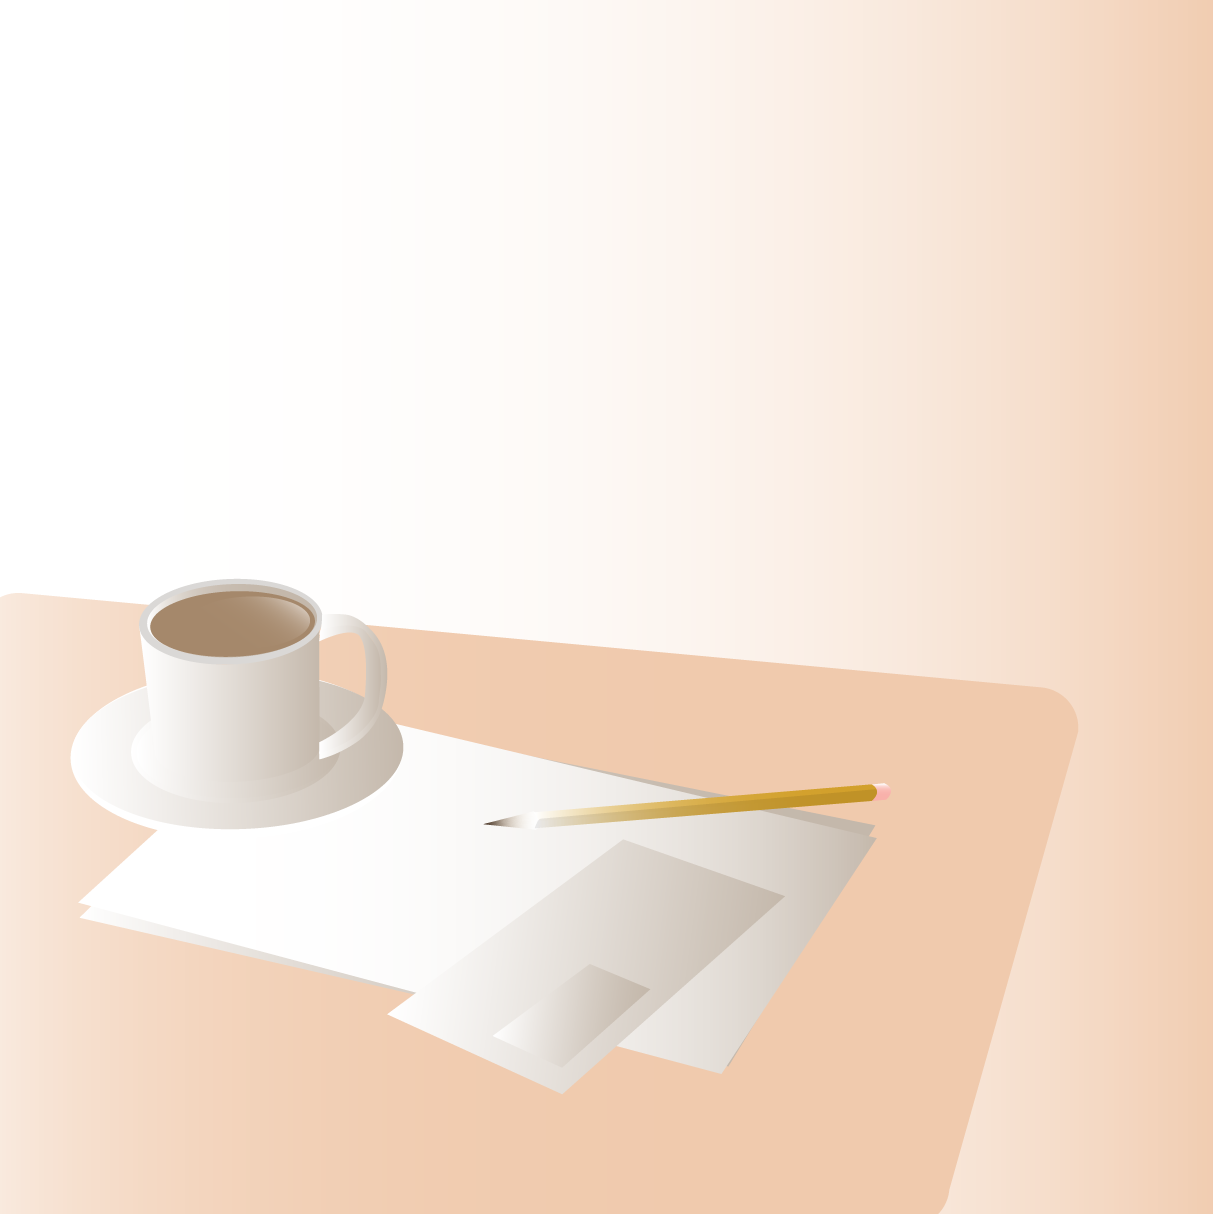 An illustration of a coffee mug and some paperwork sitting on a table.